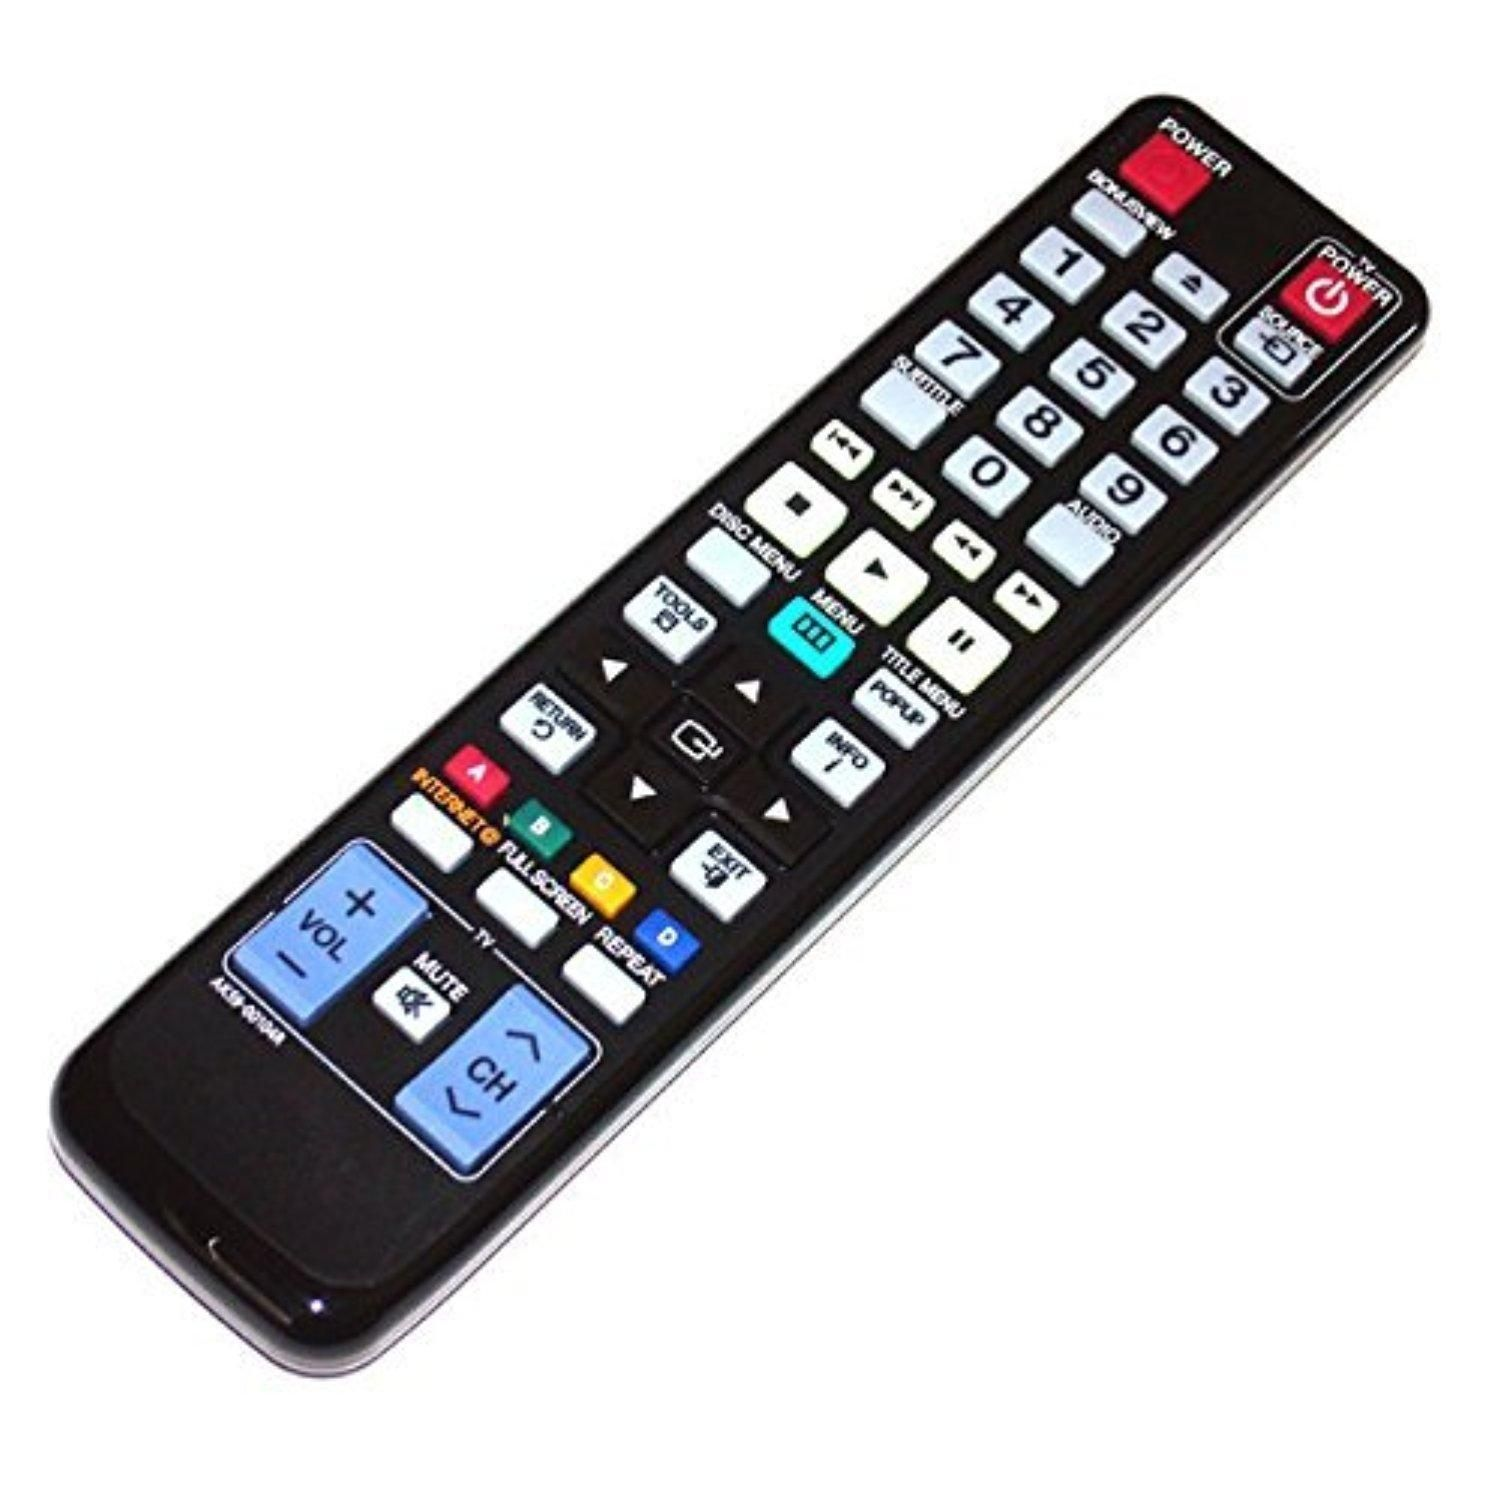 Brought To You By Avarshacom Divdivawo Lamps Ak59 00104r Samsung Bd F5100 Bluray Player Awo Replacement Remote Control Fit For Blu Ray Dvd Disc